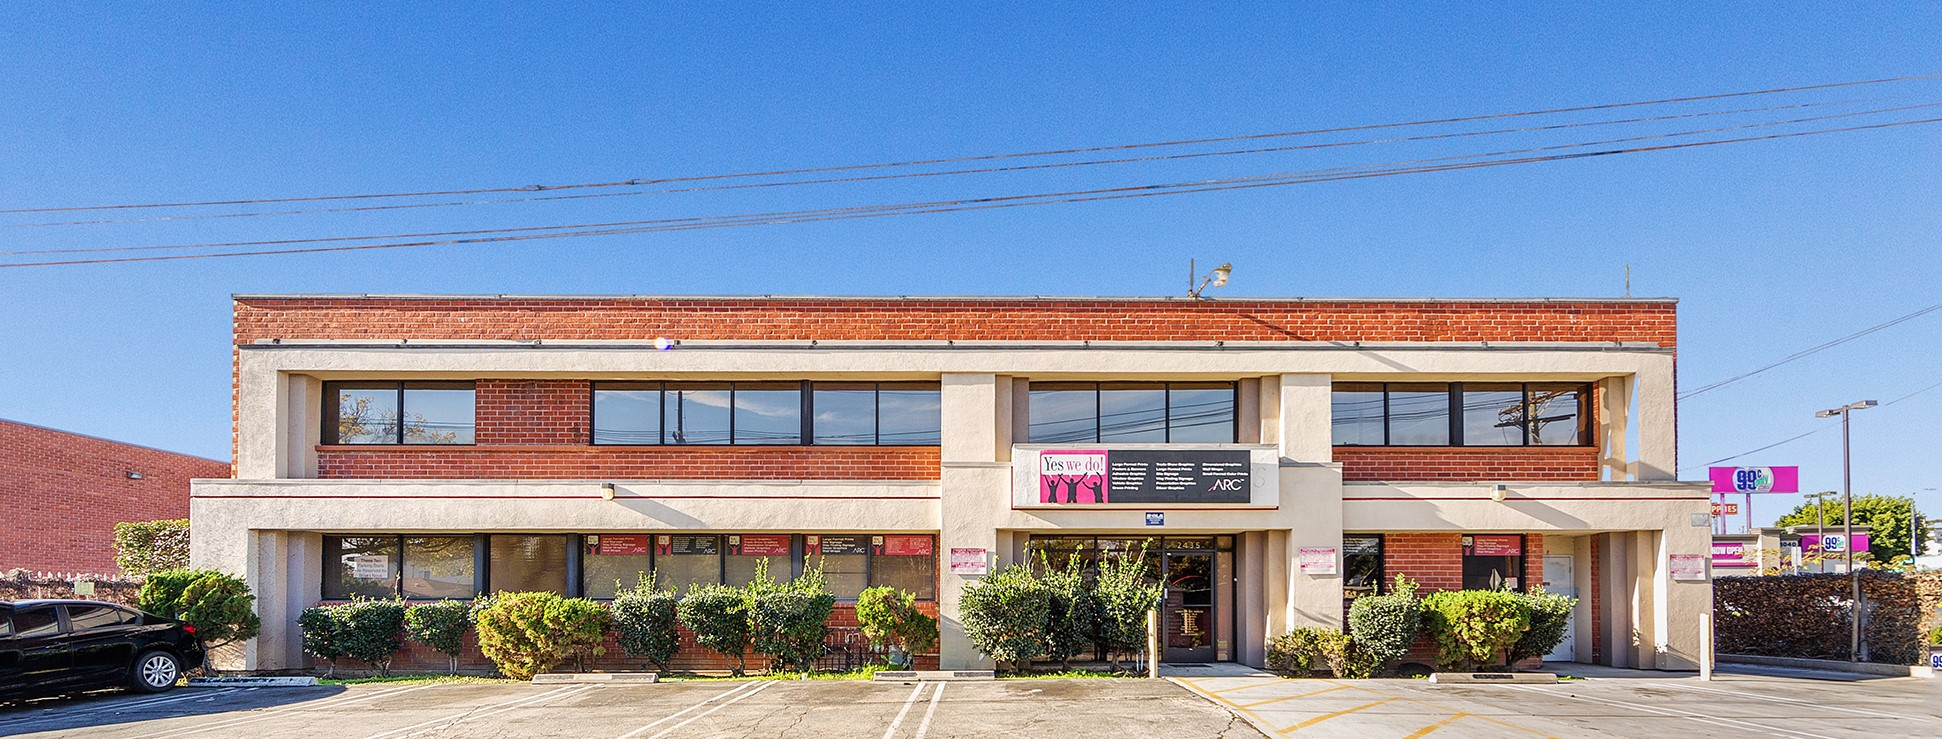 COLDWELL BANKER COMMERCIAL WESTMAC ARRANGES $7 MILLION SALE OF COMMERCIAL PROPERTY IN WEST LOS ANGELES, CA